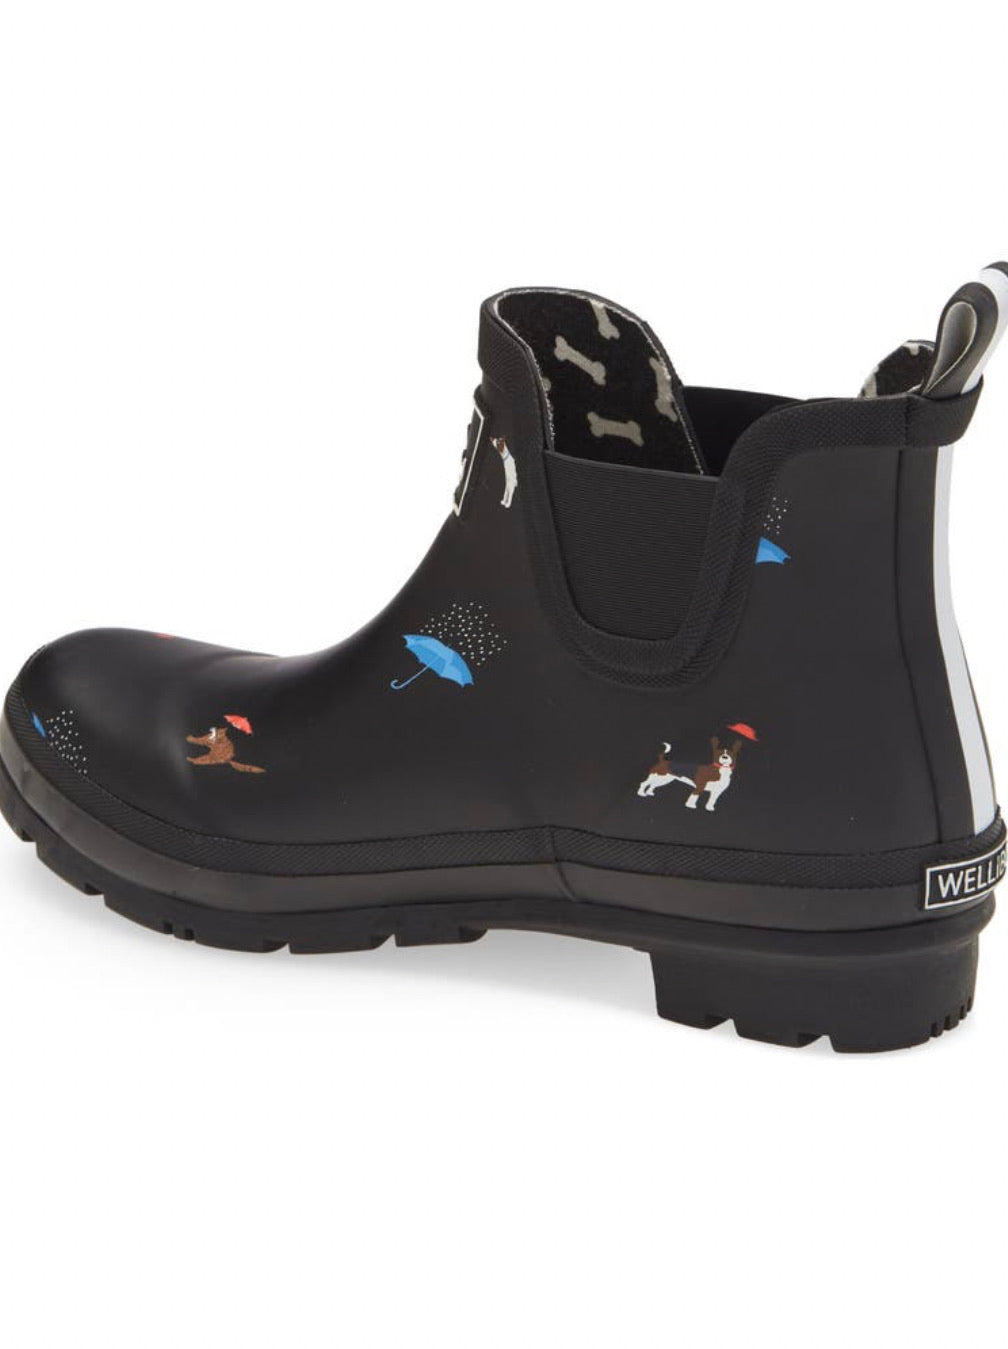 JOUL WILLIBOB RAINBOOTS CATS AND DOGS